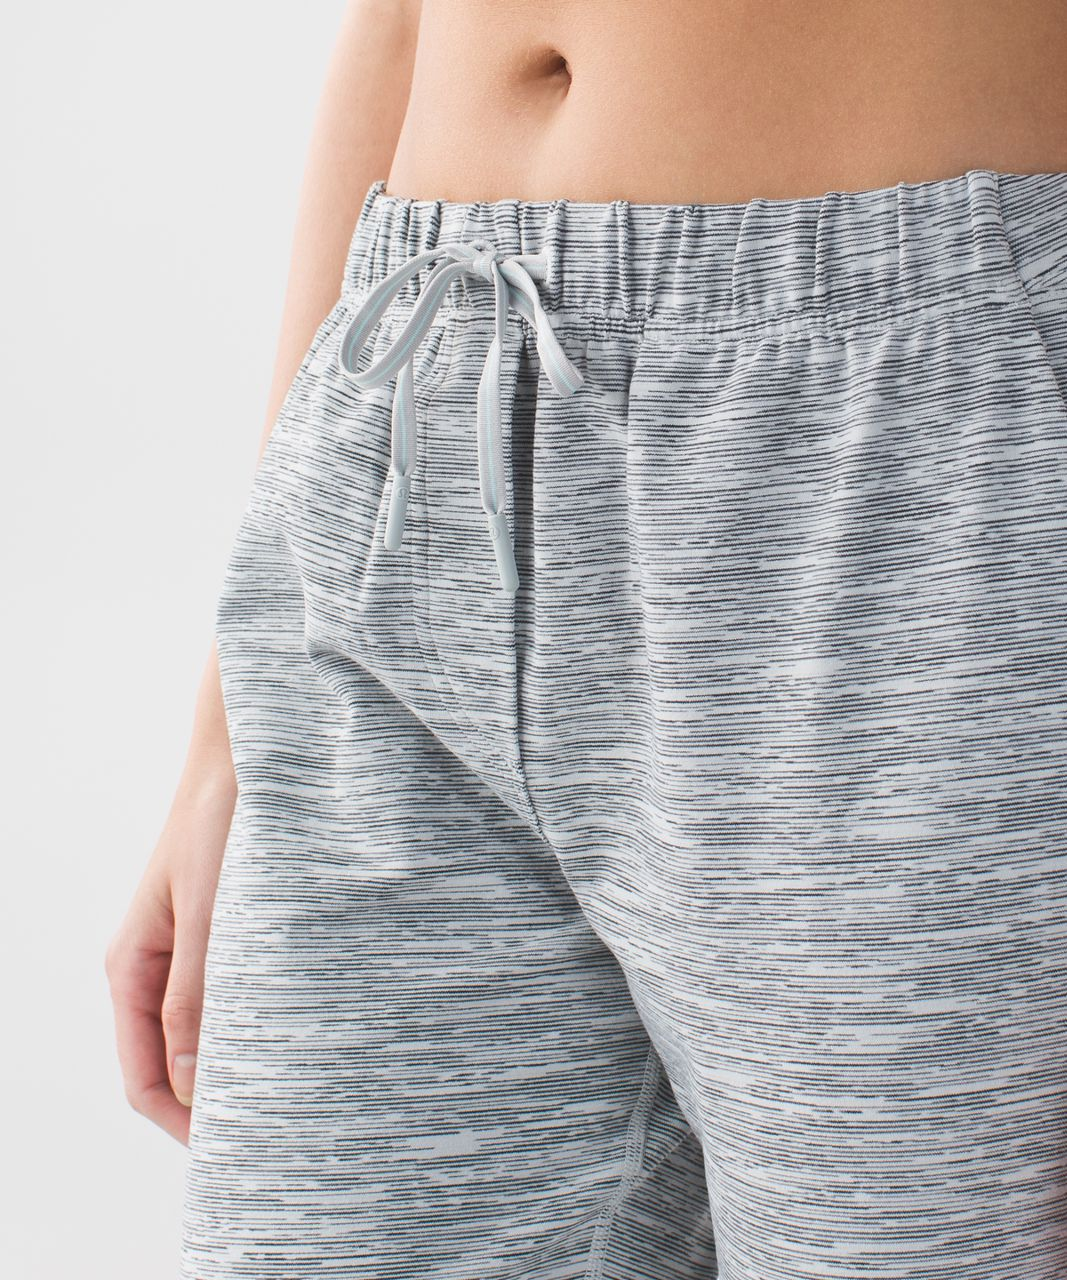 Lululemon Jet Crop *Luon (Slim) - Wee Are From Space Silver Spoon